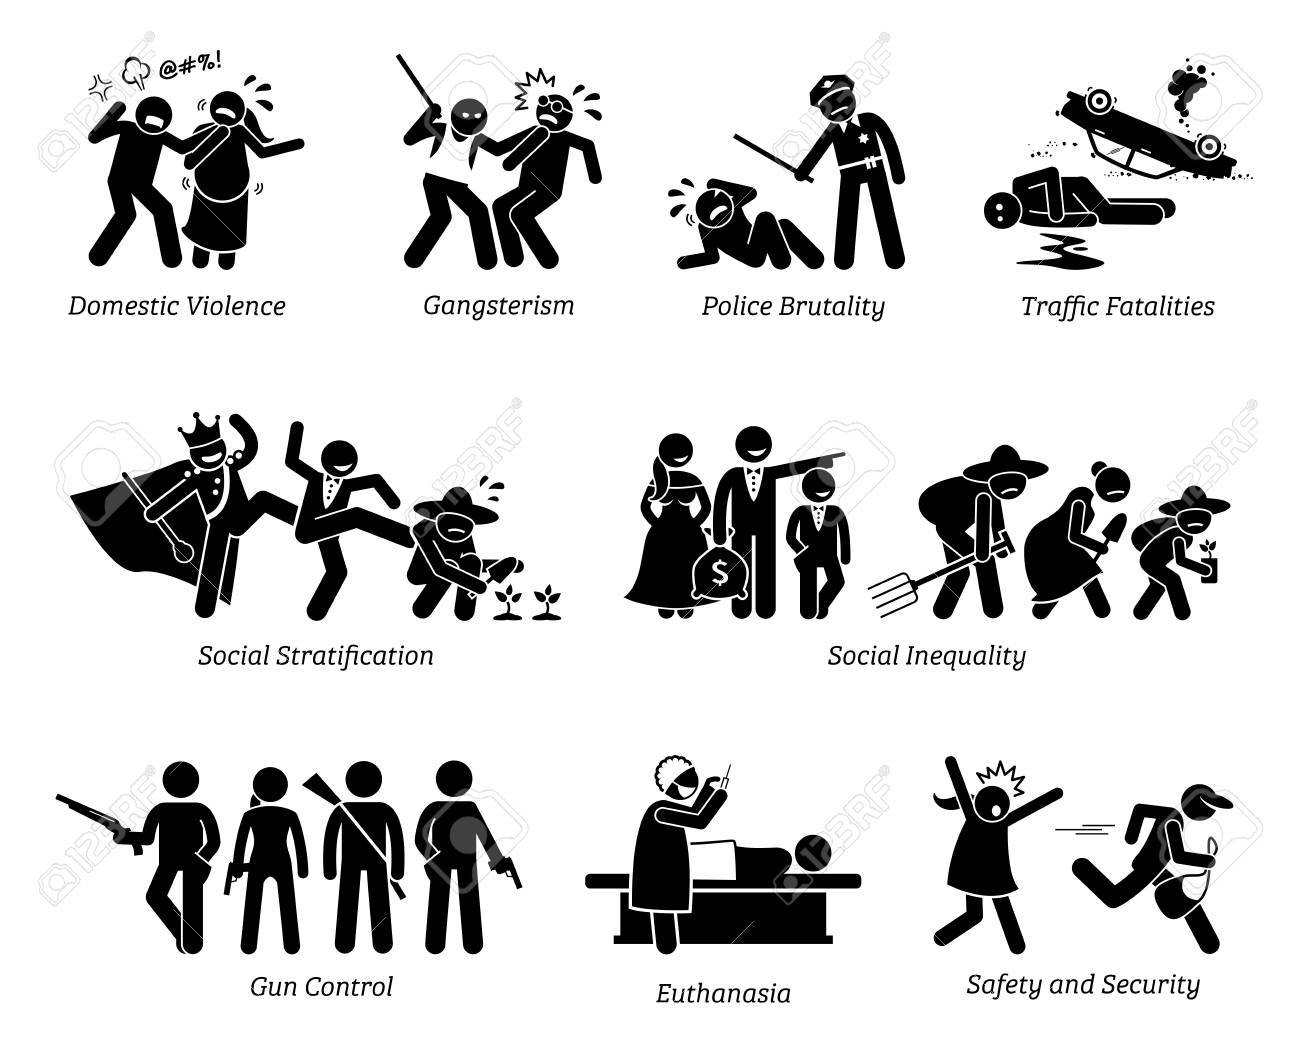 Social Problems and Critical Issues Stick Figure Pictogram Icons. Illustrations depicts domestic violence, gangster, police brutality, social inequality, gun control, euthanasia, safety and security. - 89057001